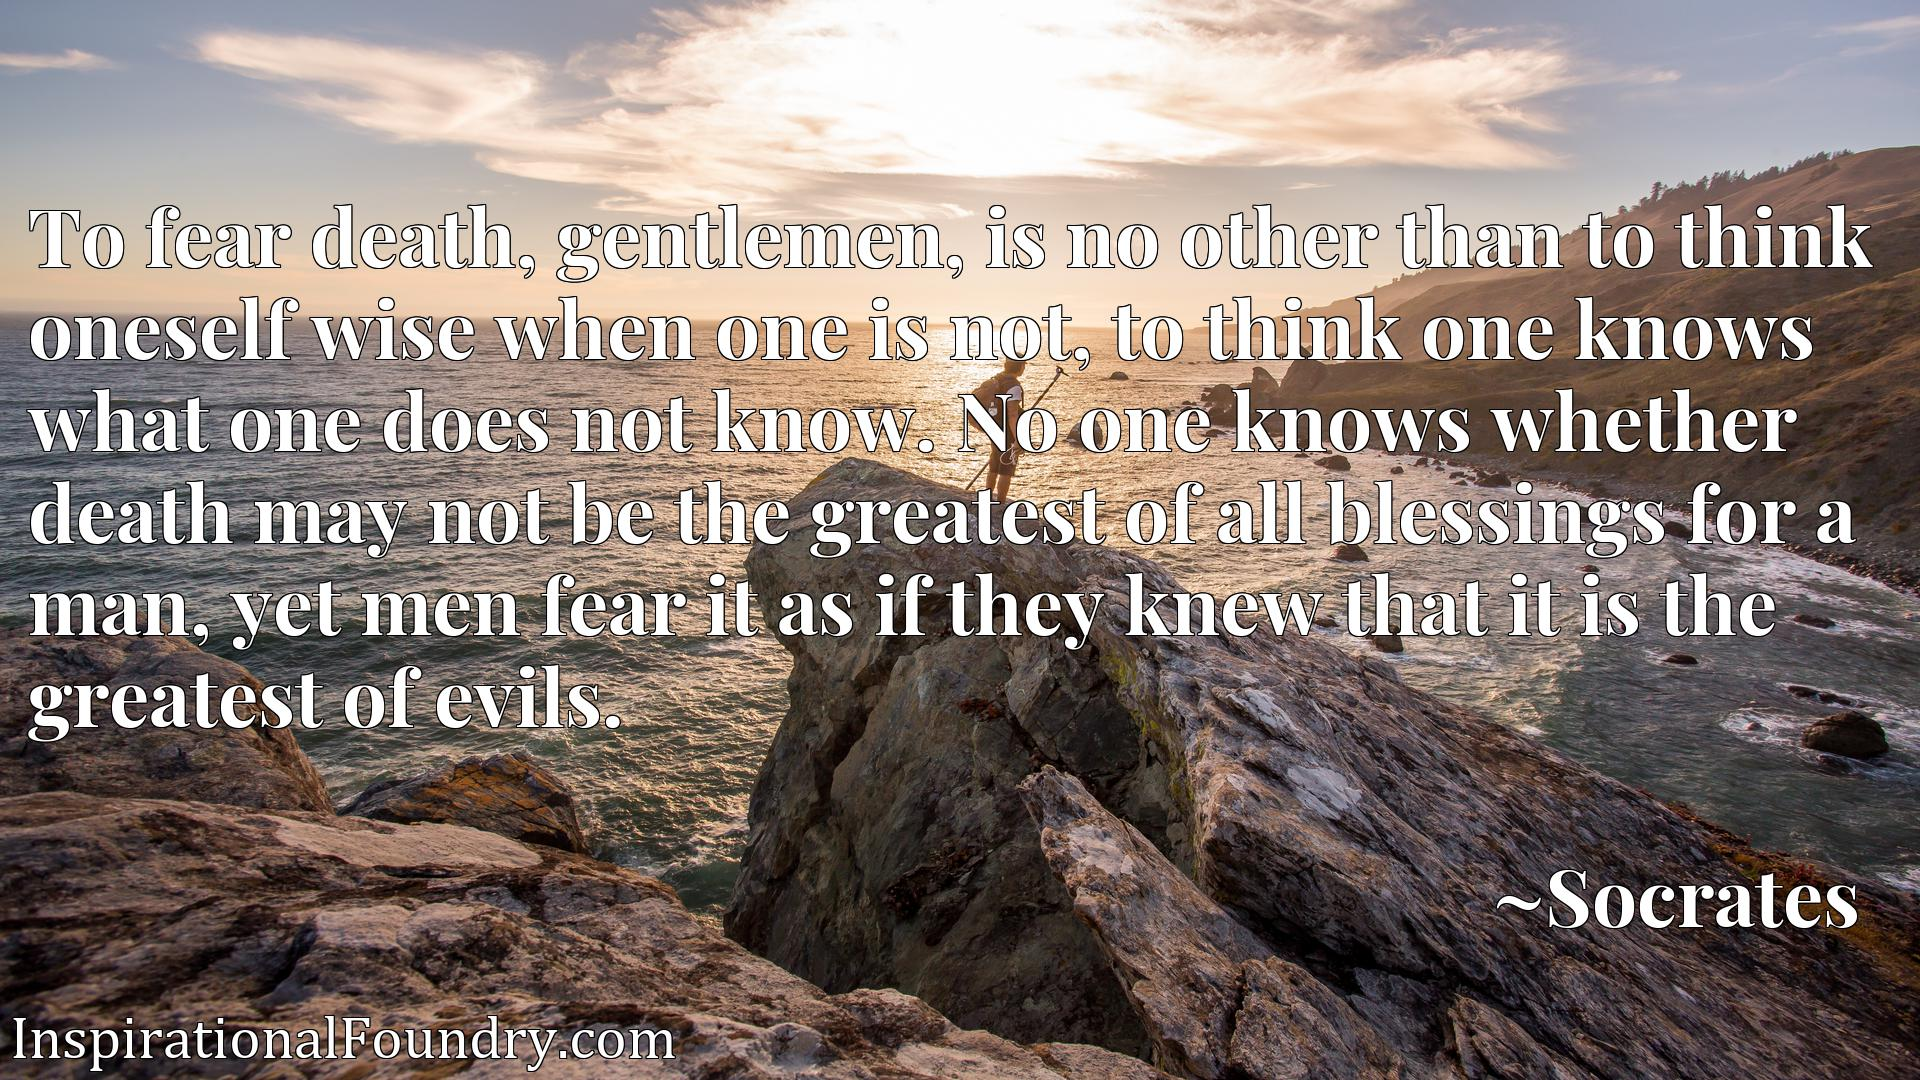 To fear death, gentlemen, is no other than to think oneself wise when one is not, to think one knows what one does not know. No one knows whether death may not be the greatest of all blessings for a man, yet men fear it as if they knew that it is the greatest of evils.